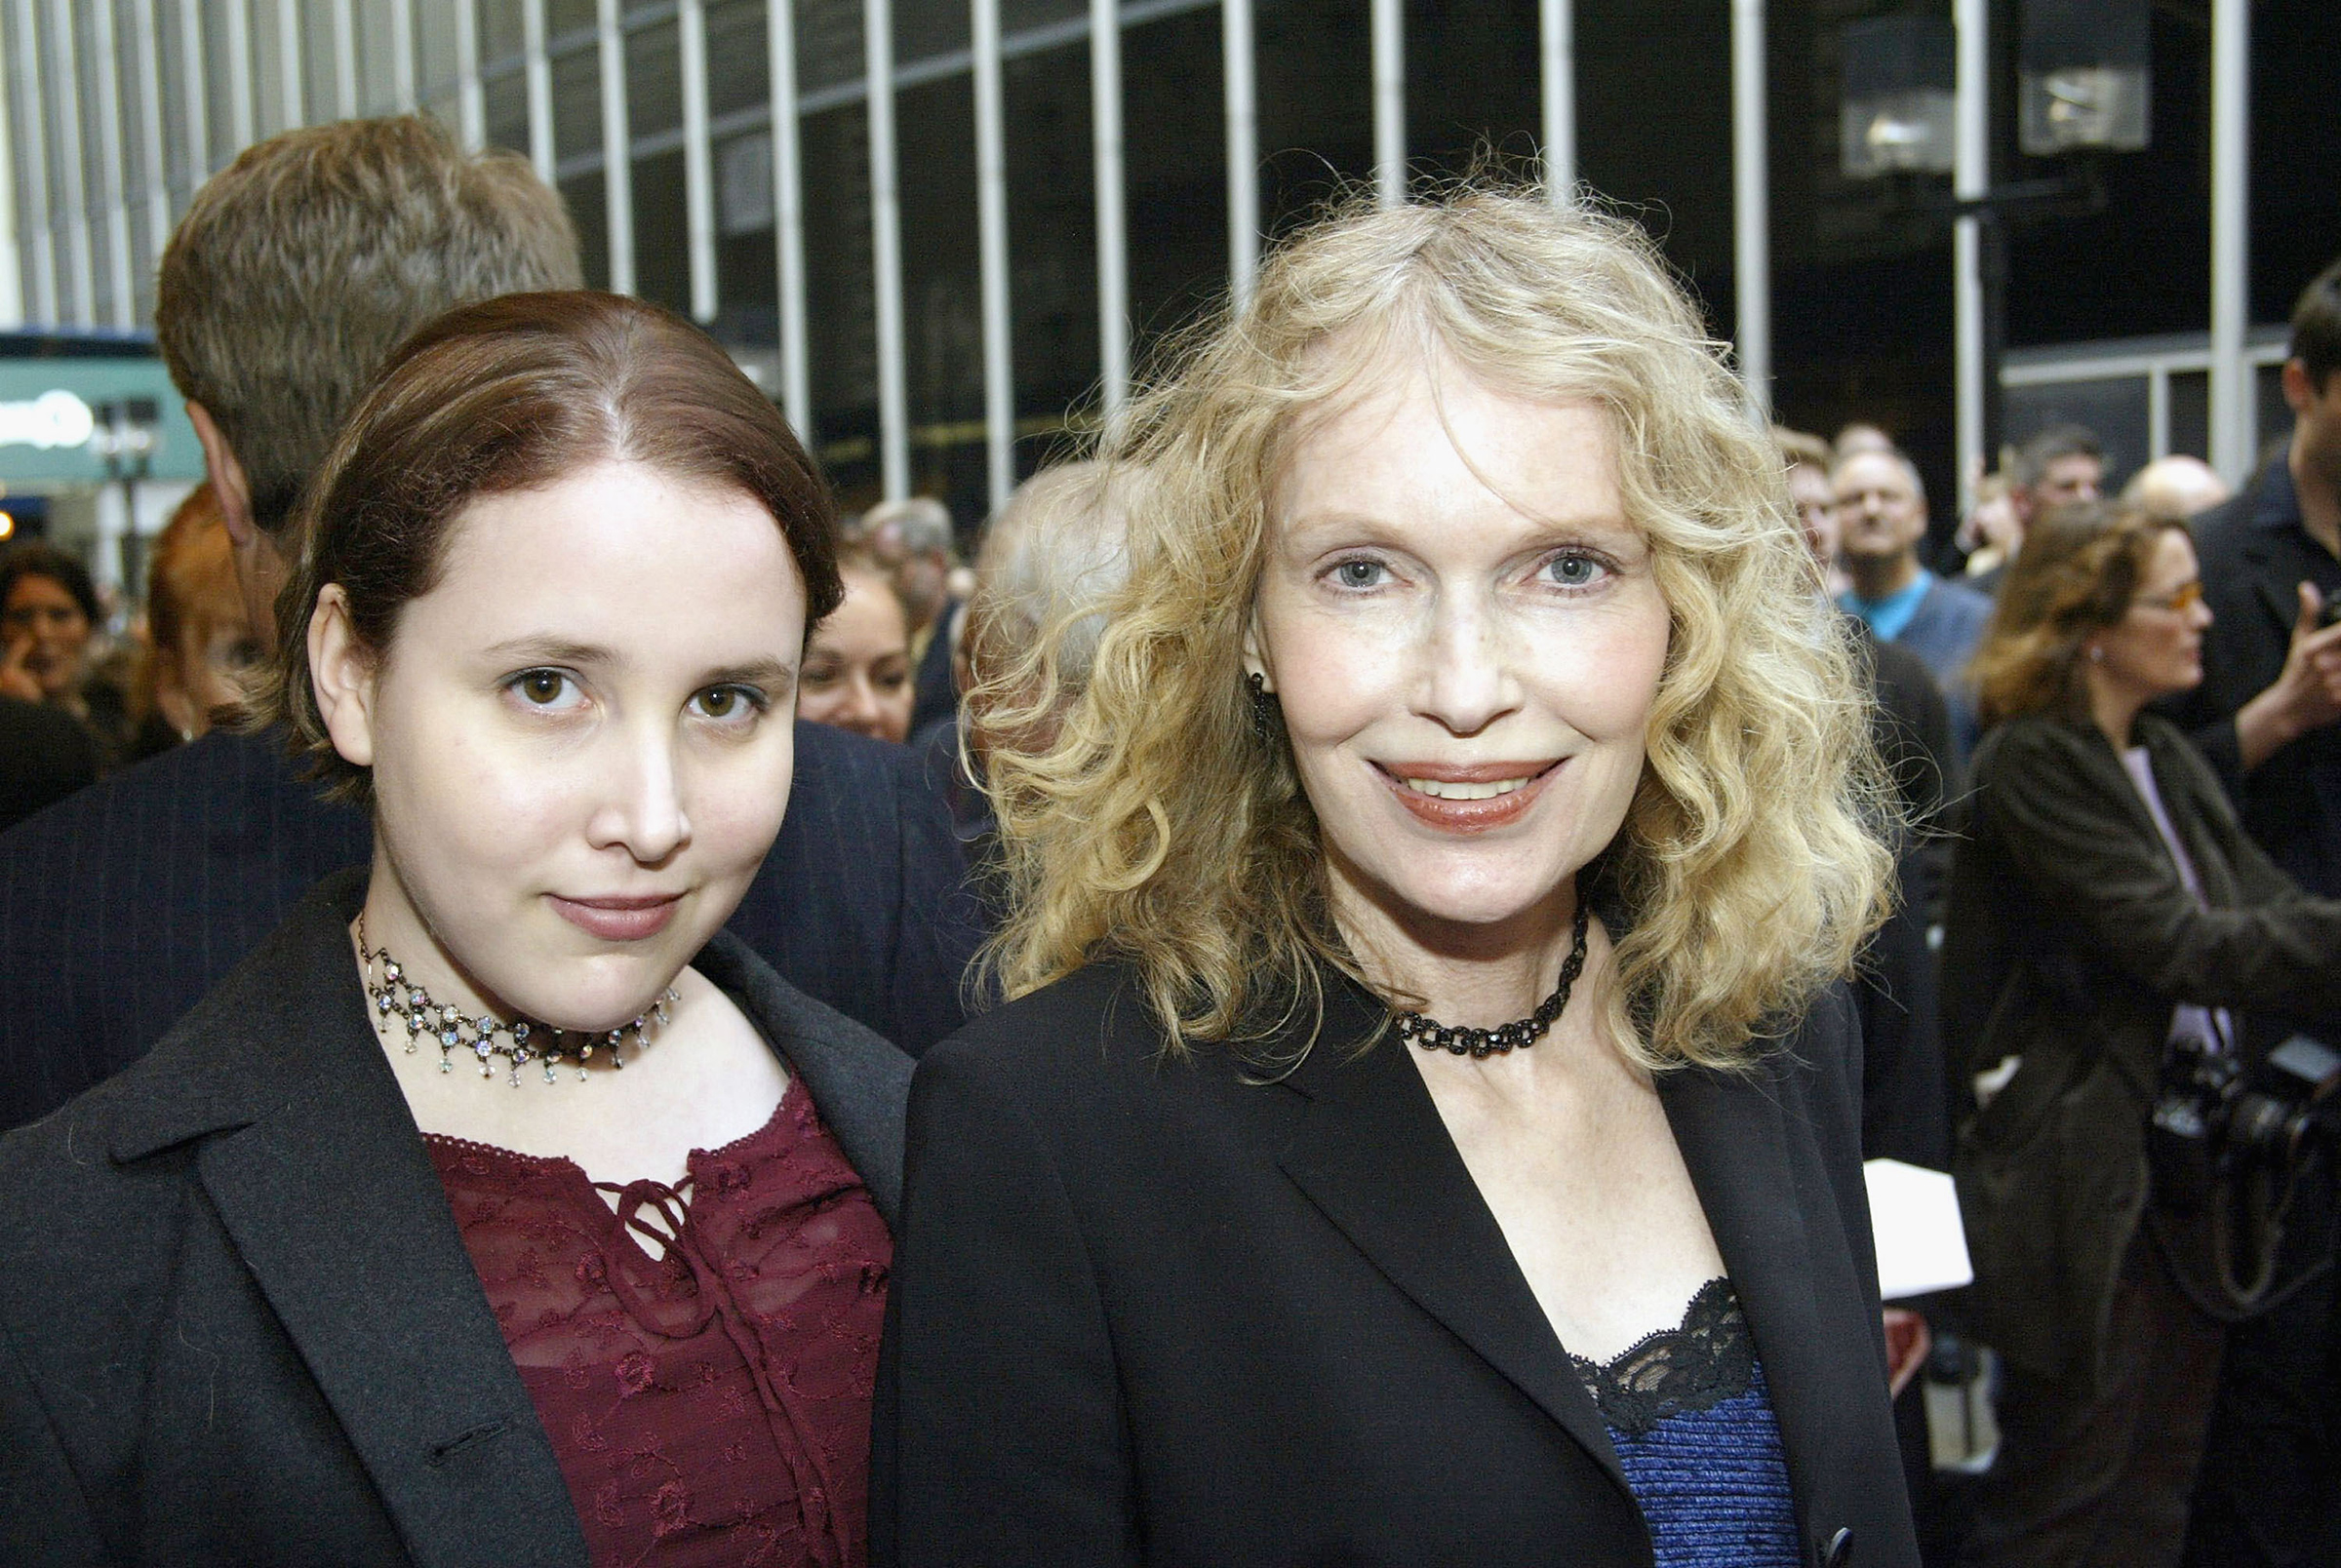 Dylan Farrow, left, and her mother Mia Farrow arrive at the Opening Night of  Gypsy  at The Shubert Theatre in New York City on May 1, 2003